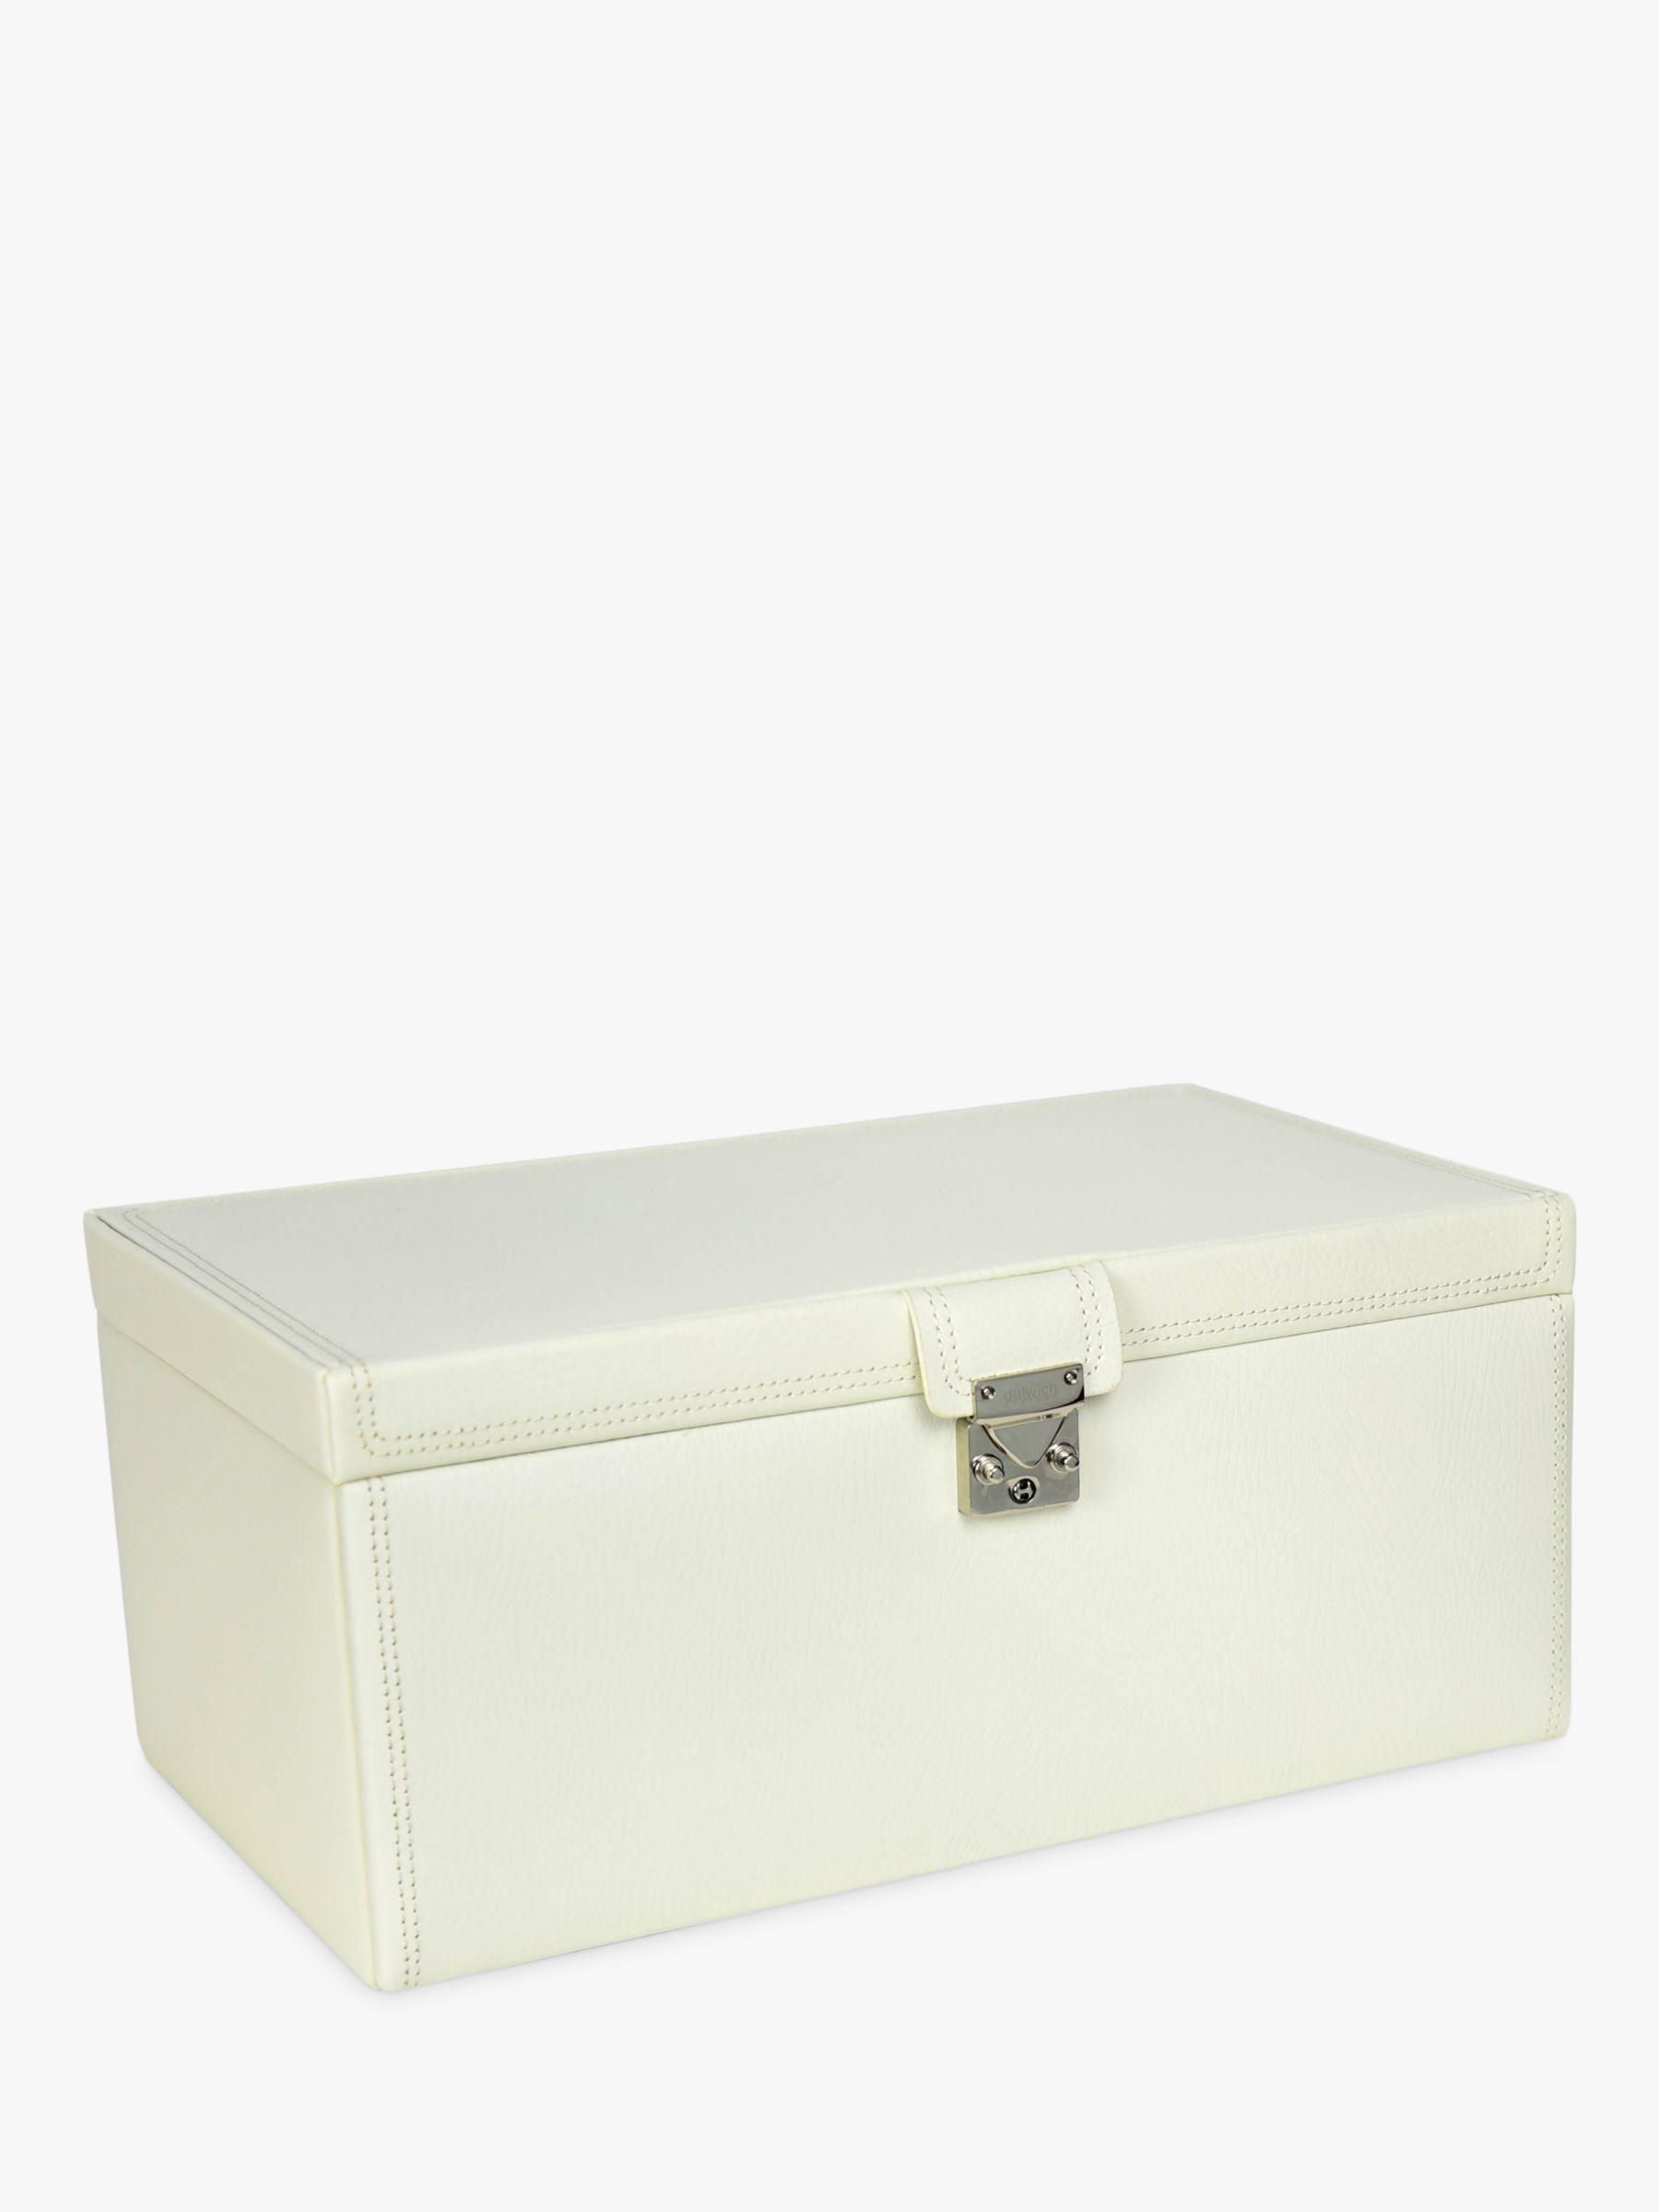 Dulwich Designs Dulwich Designs Extra Large Jewellery Box